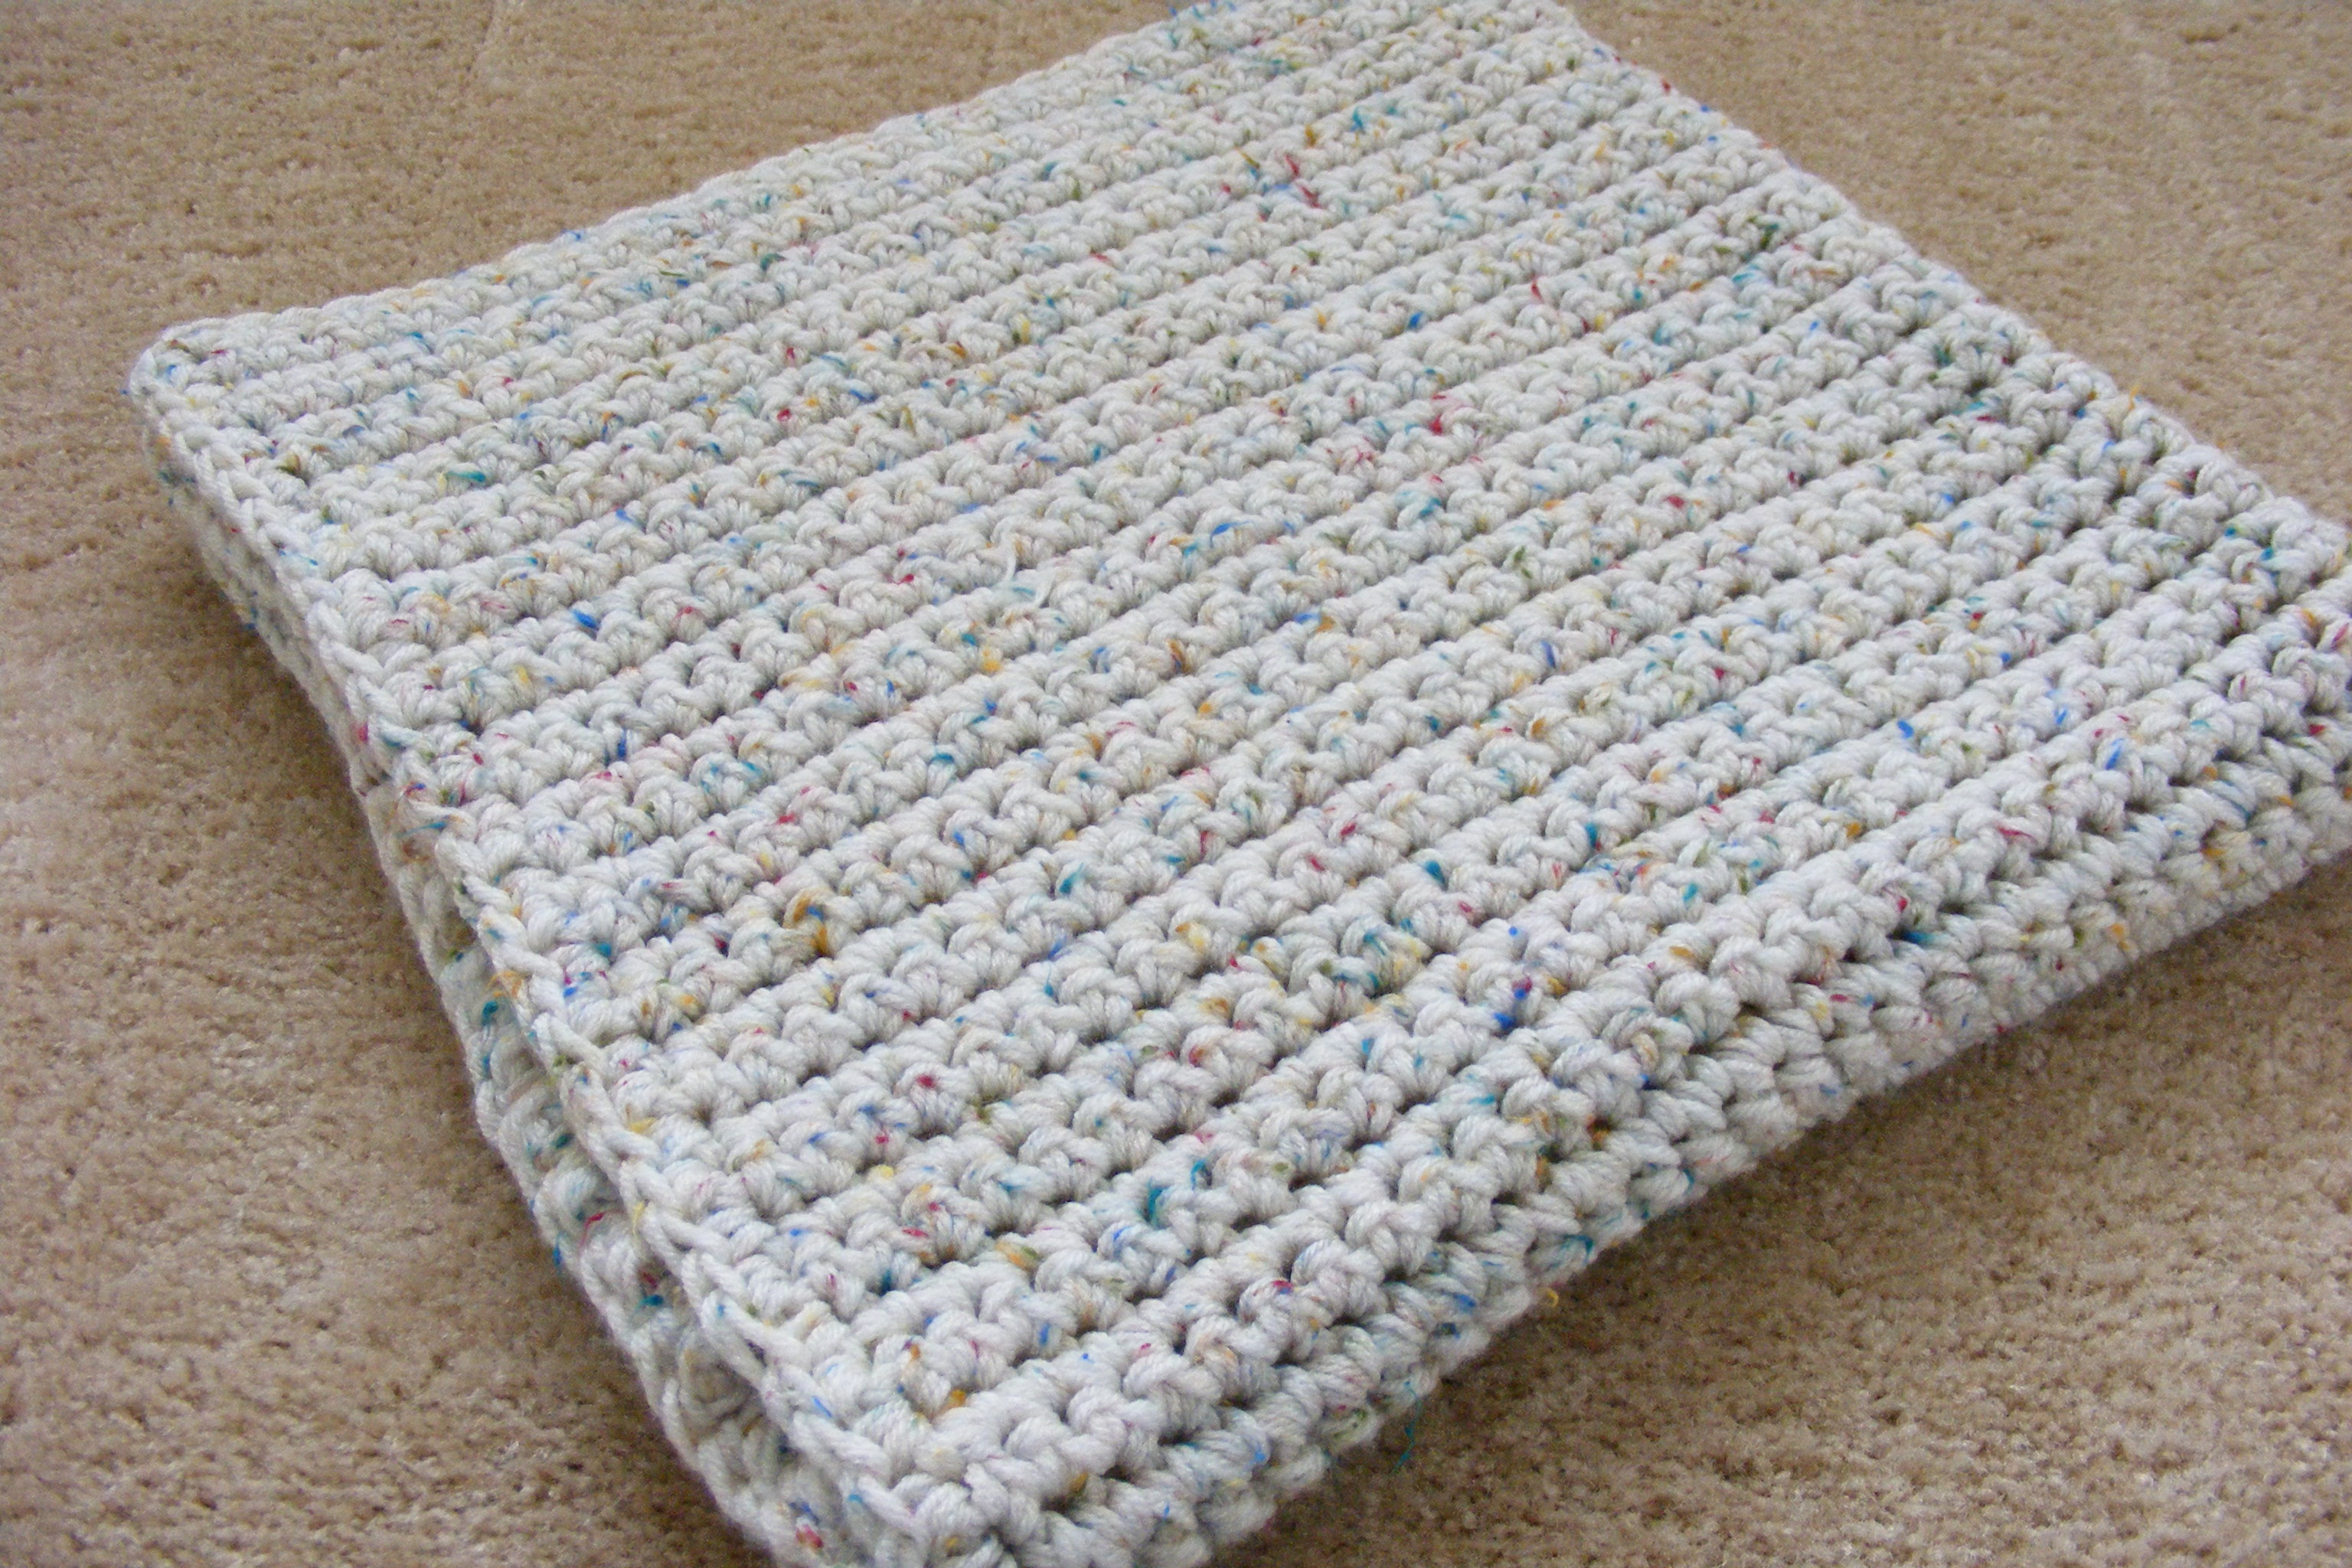 How to Crochet the Edge of a Fleece Blanket | eHow.com